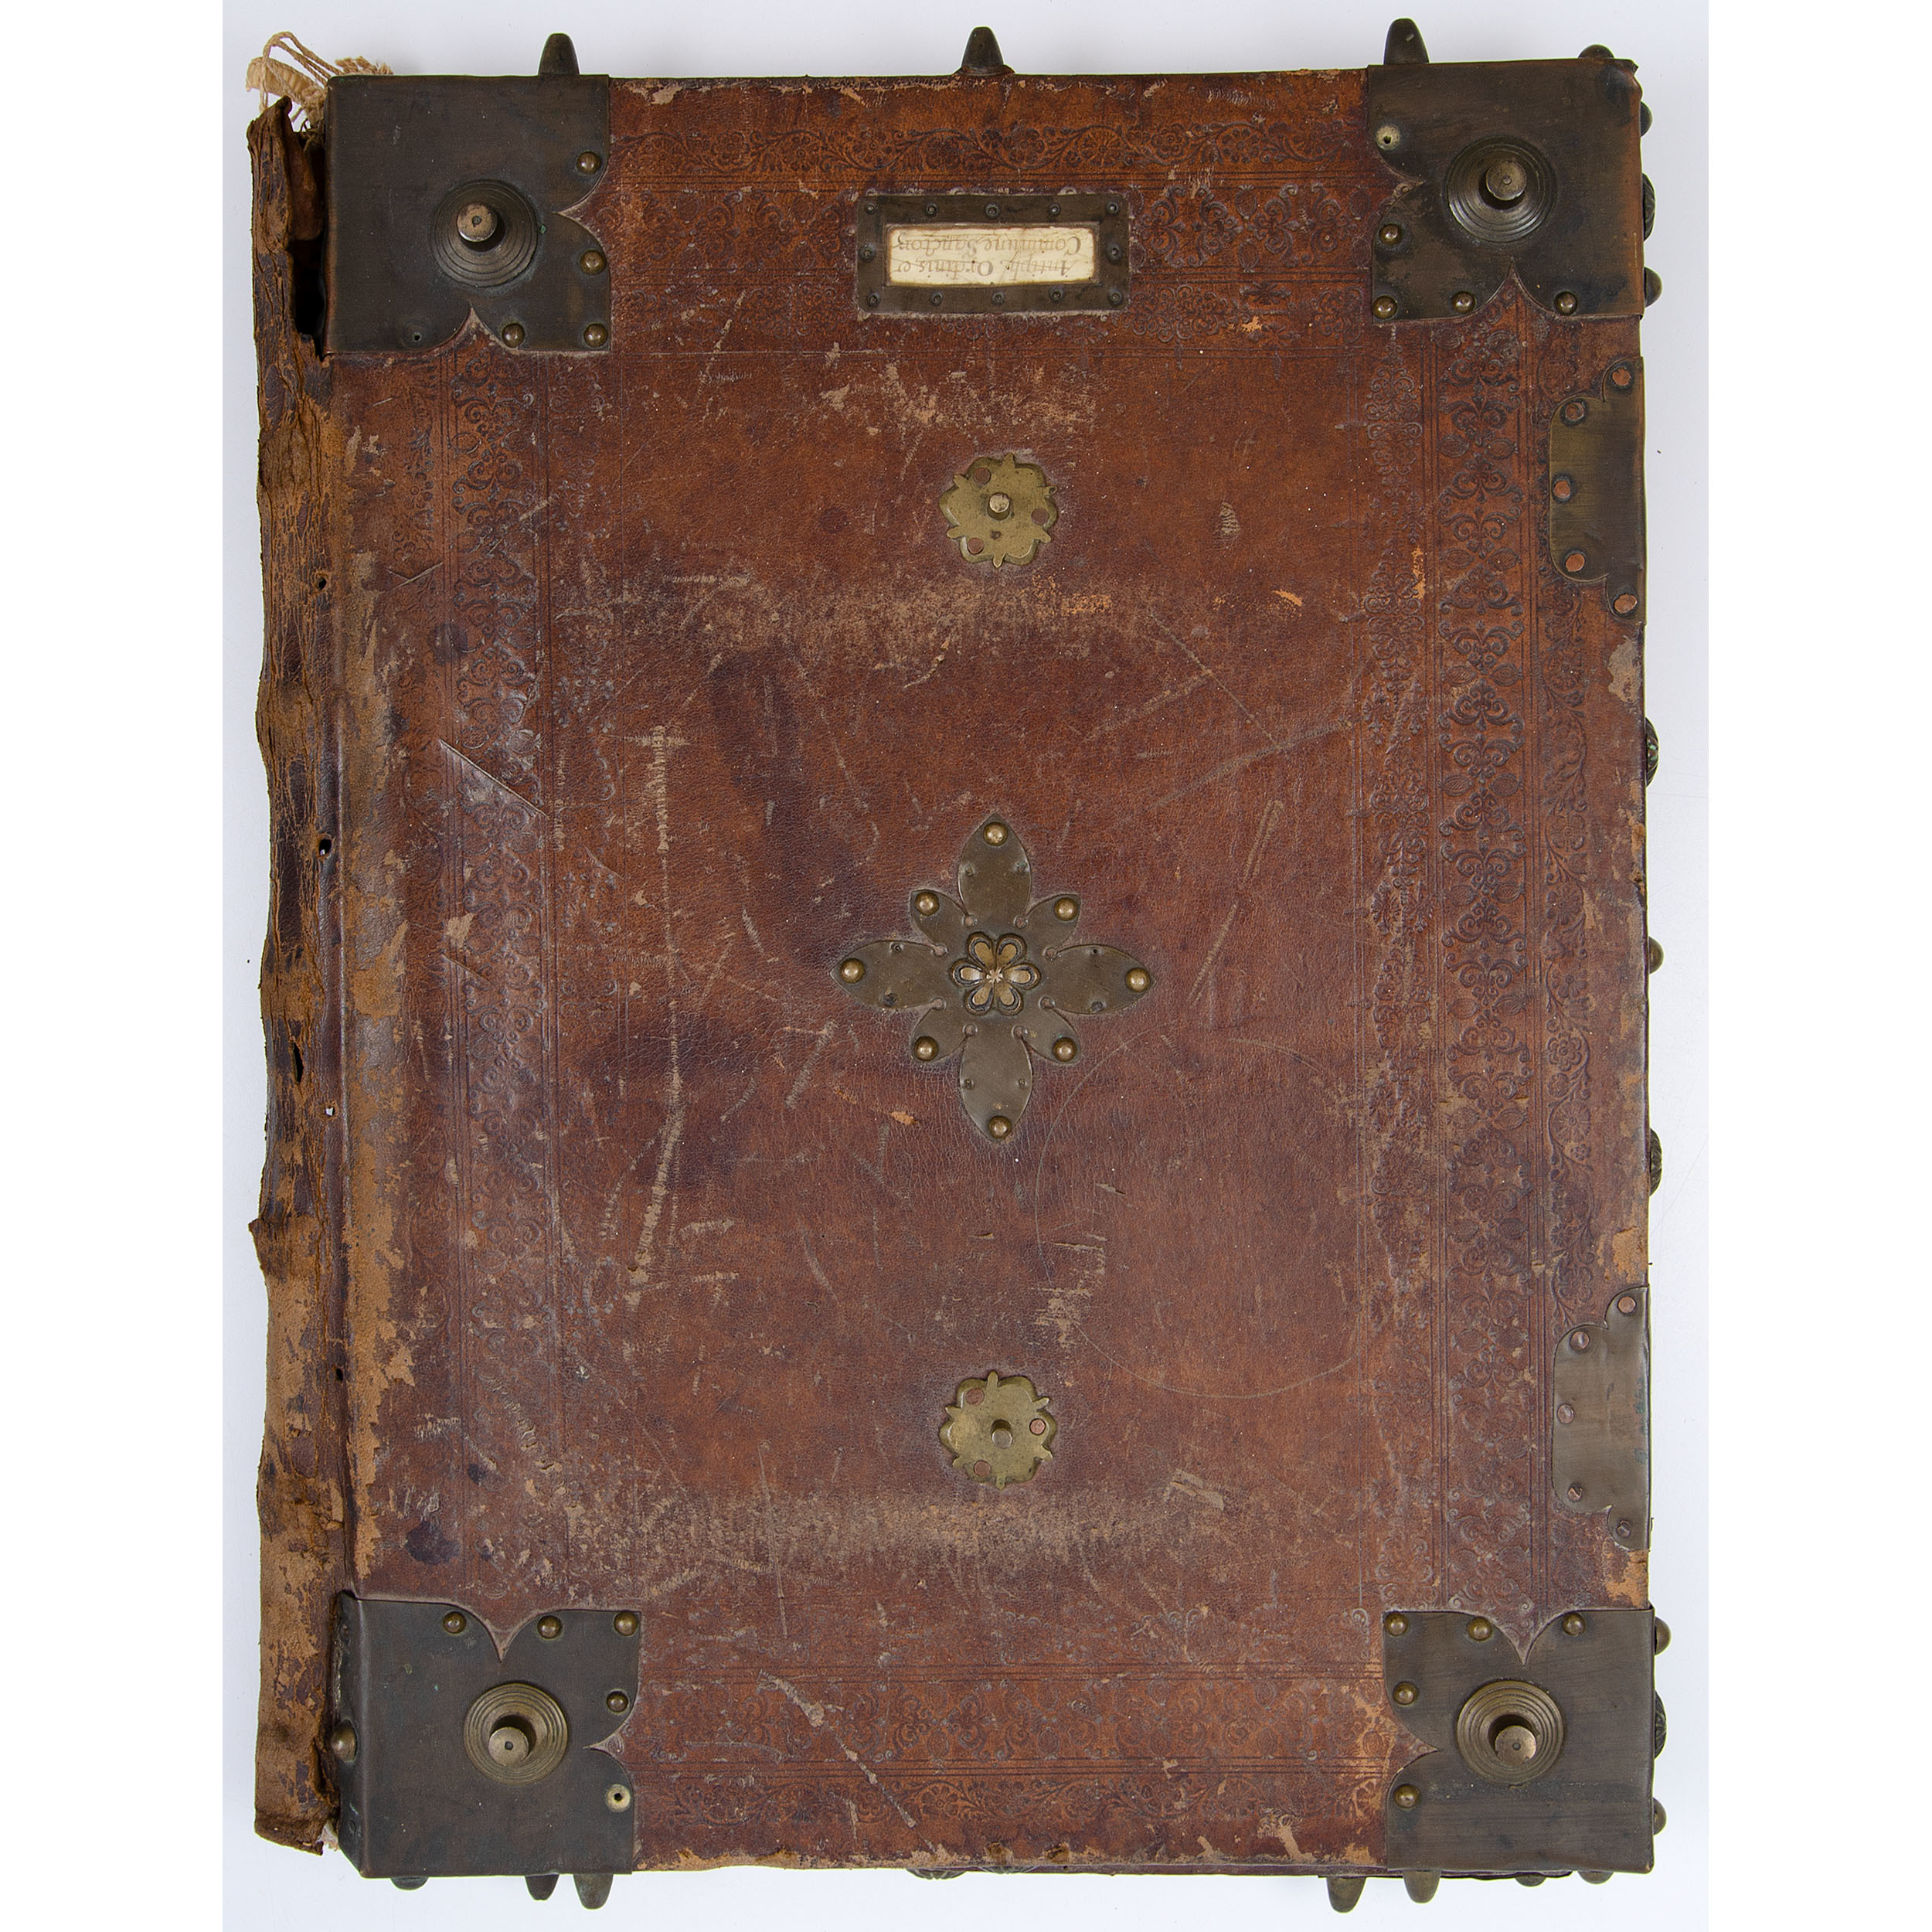 Leather Portfolio] 18th Century Book Cover